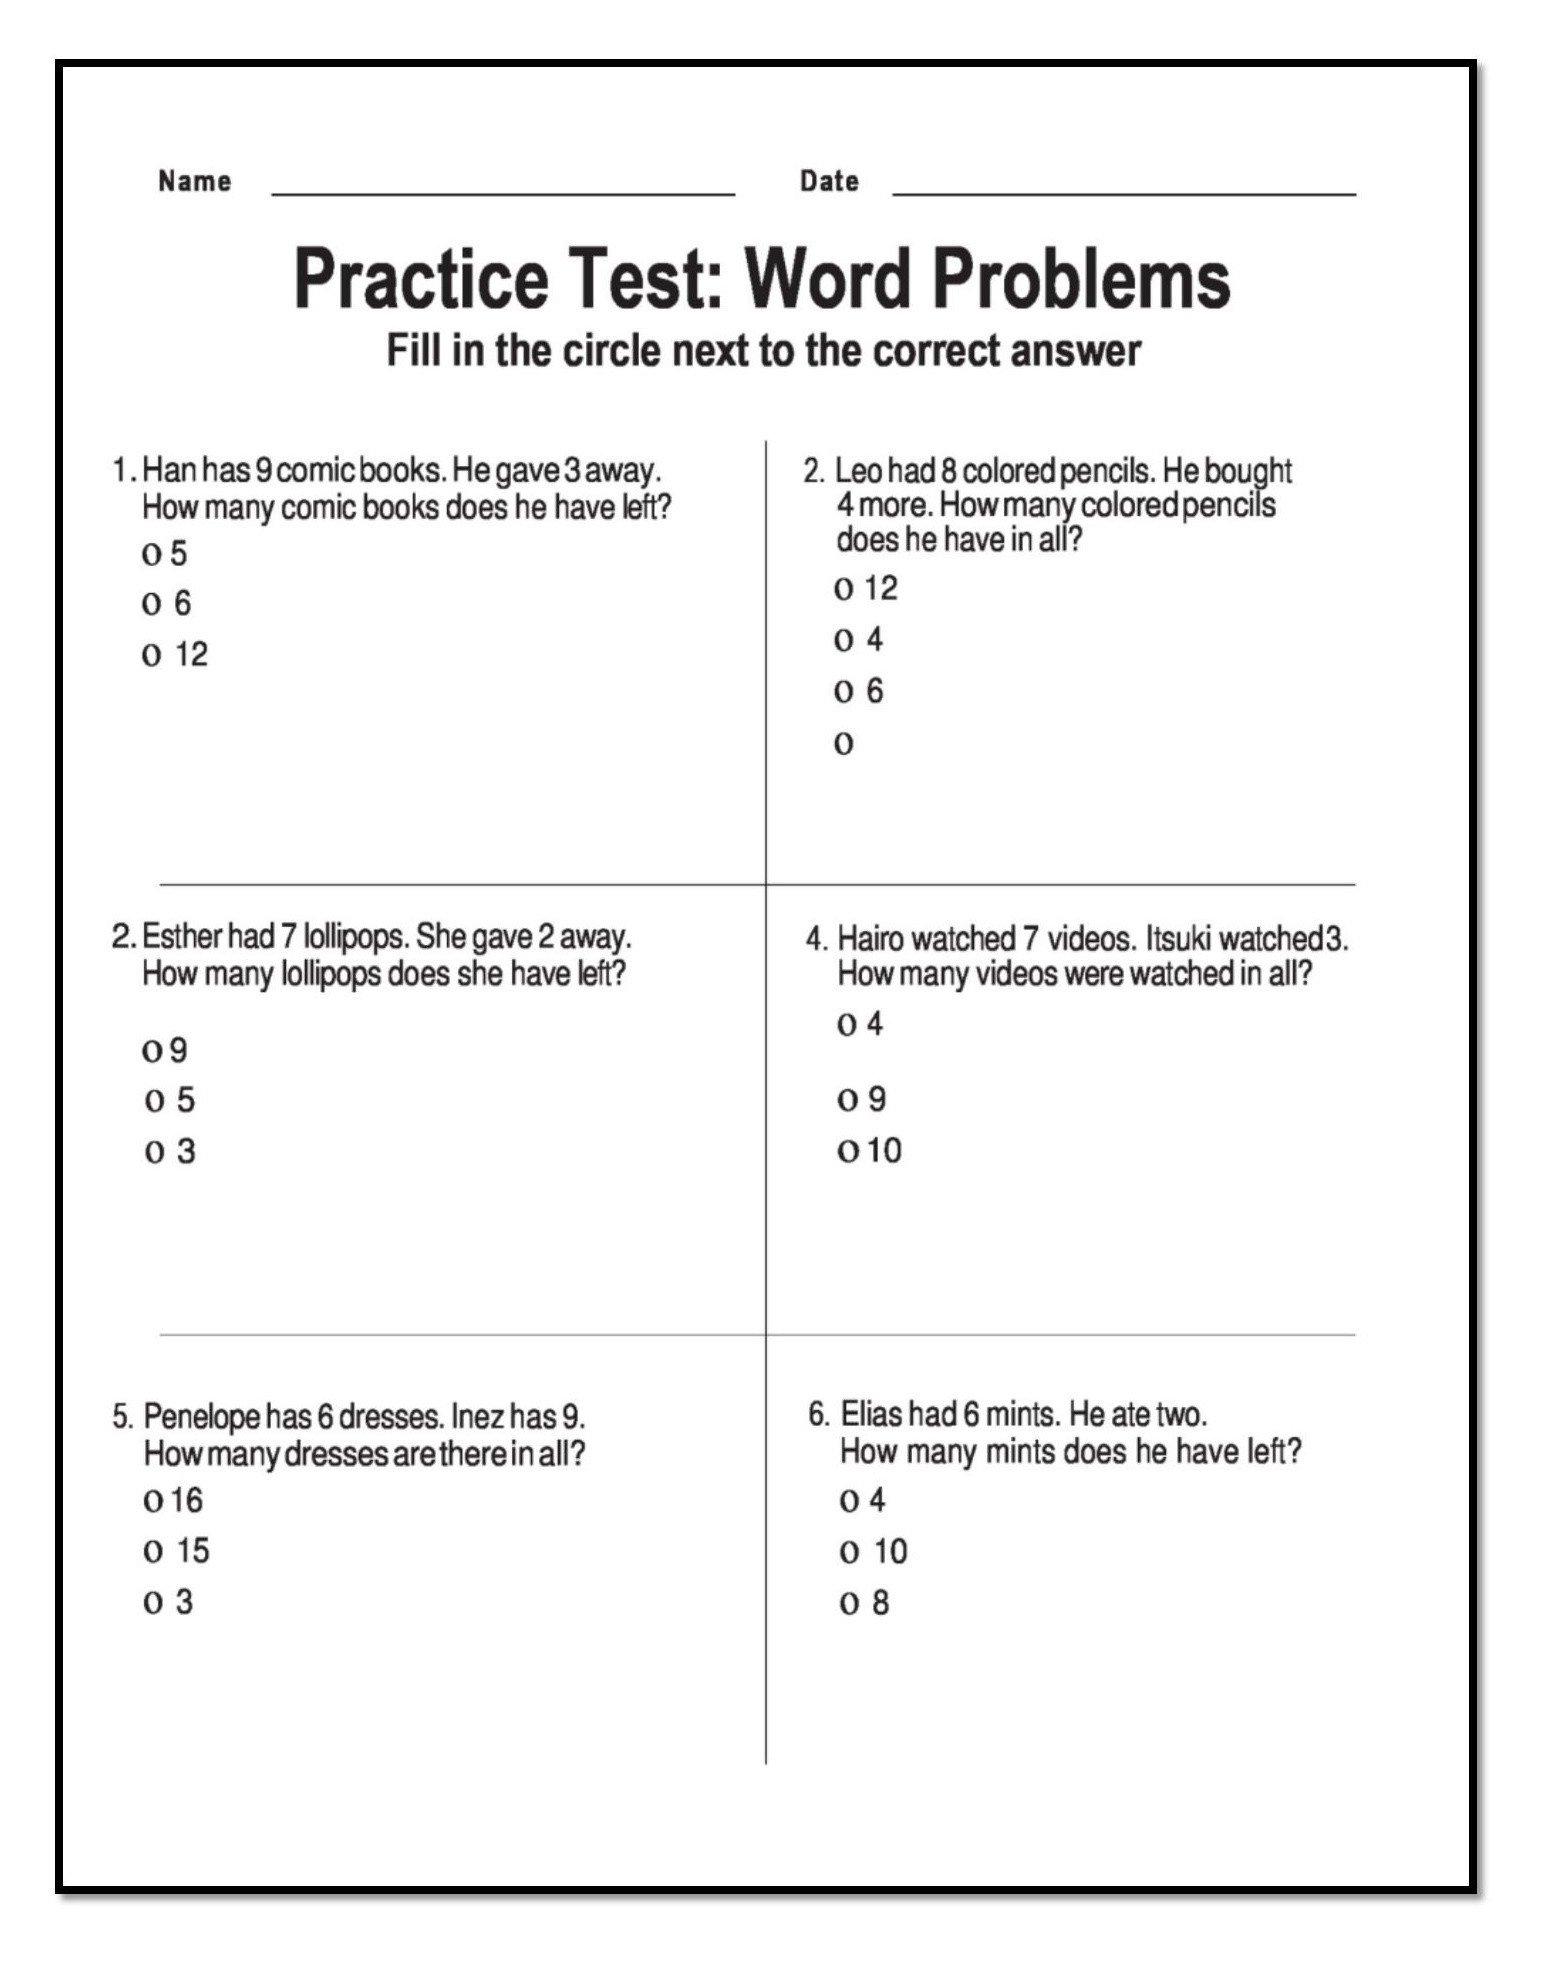 Word Problems Worksheets 1st Grade 10 Amazing 1st Grade Math Word Problems Worksheets Samples